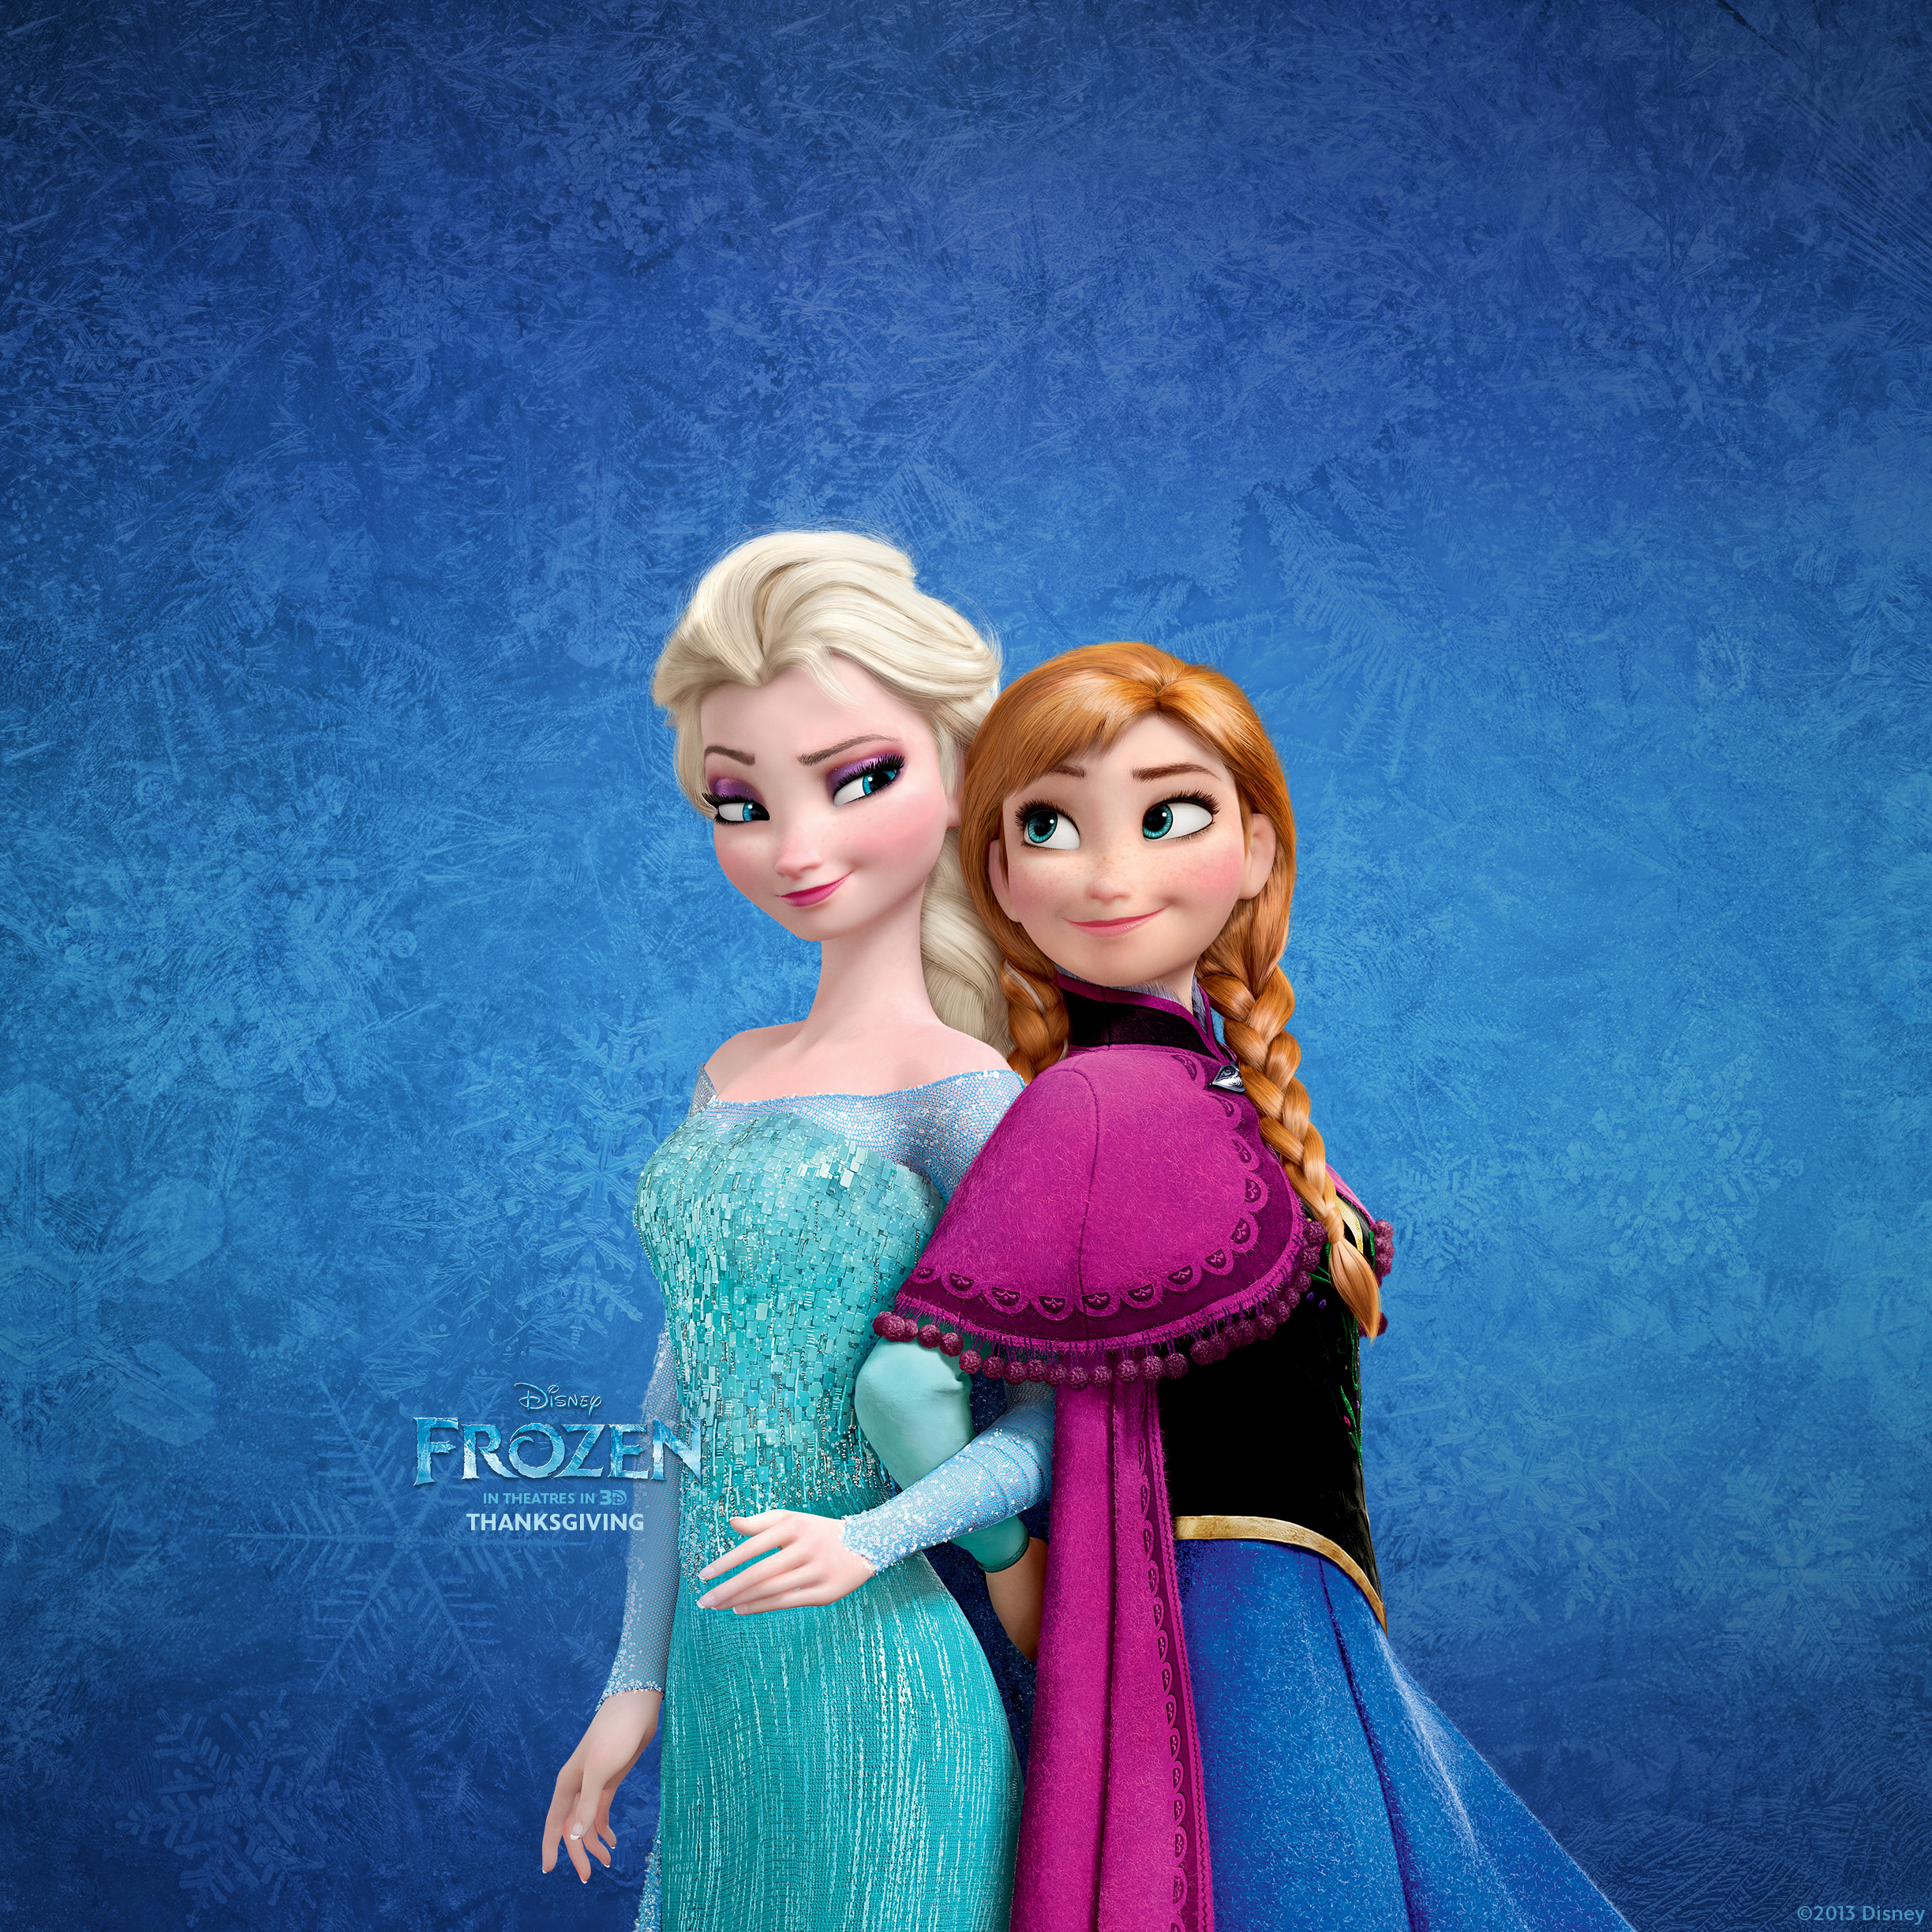 Frozen Elsa and Anna Wallpaper for Ipad in High Resolution at Cartoons 2448x2448